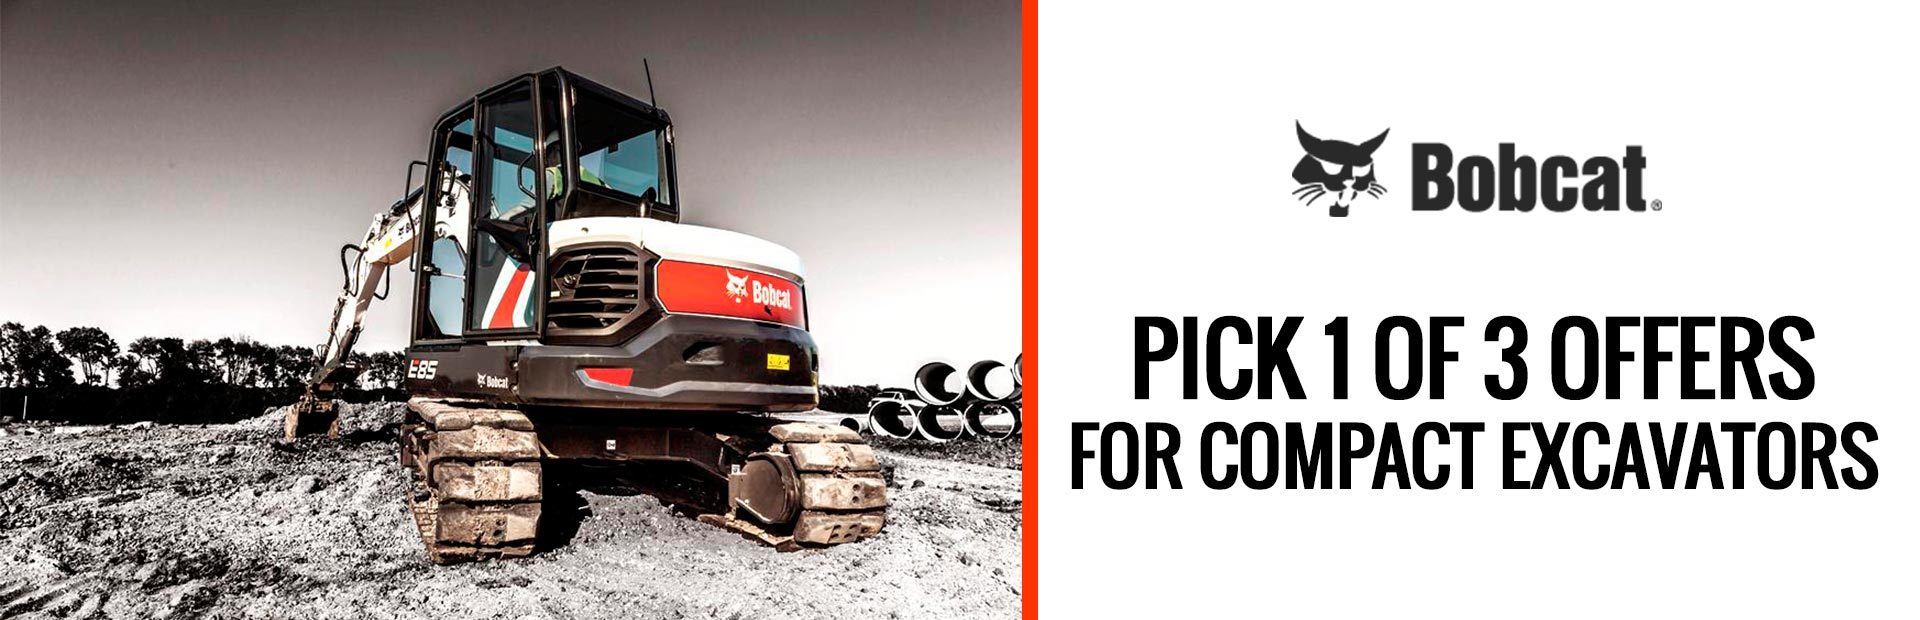 Bobcat - Pick 1 of 3 Offers for Bobcat Compact Excavators